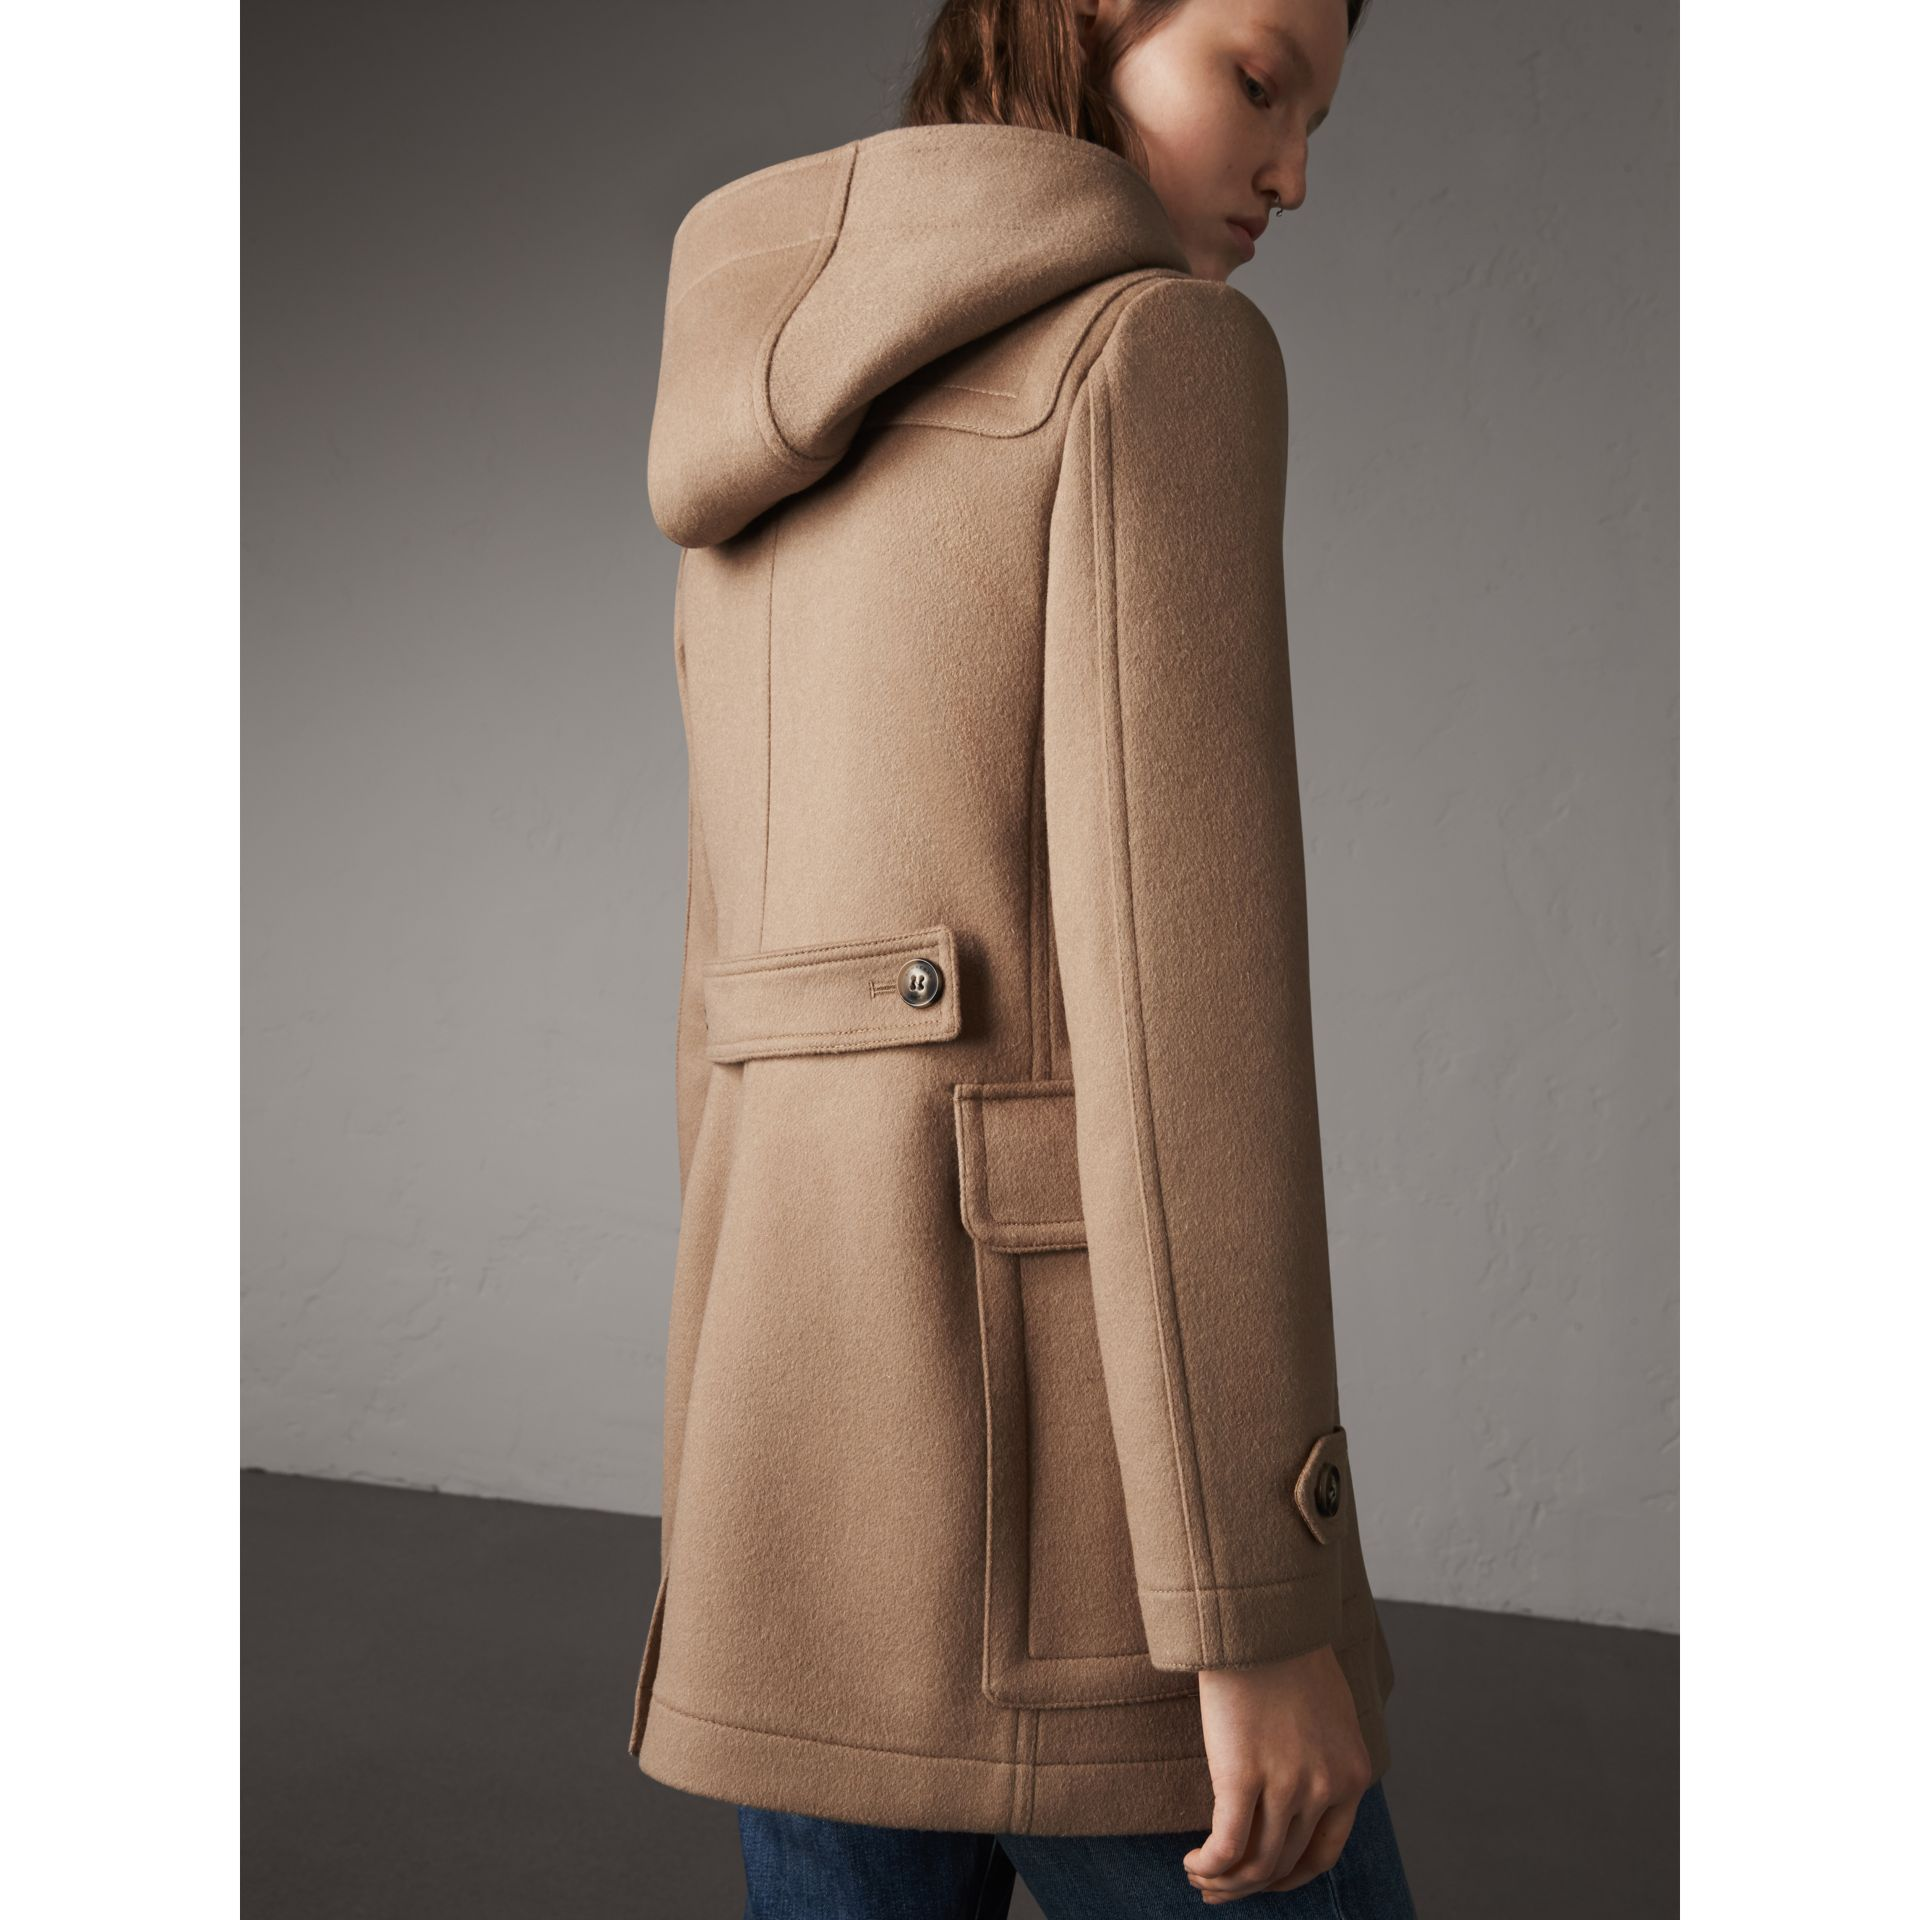 Fitted Wool Duffle Coat in New Camel - Women | Burberry - gallery image 3